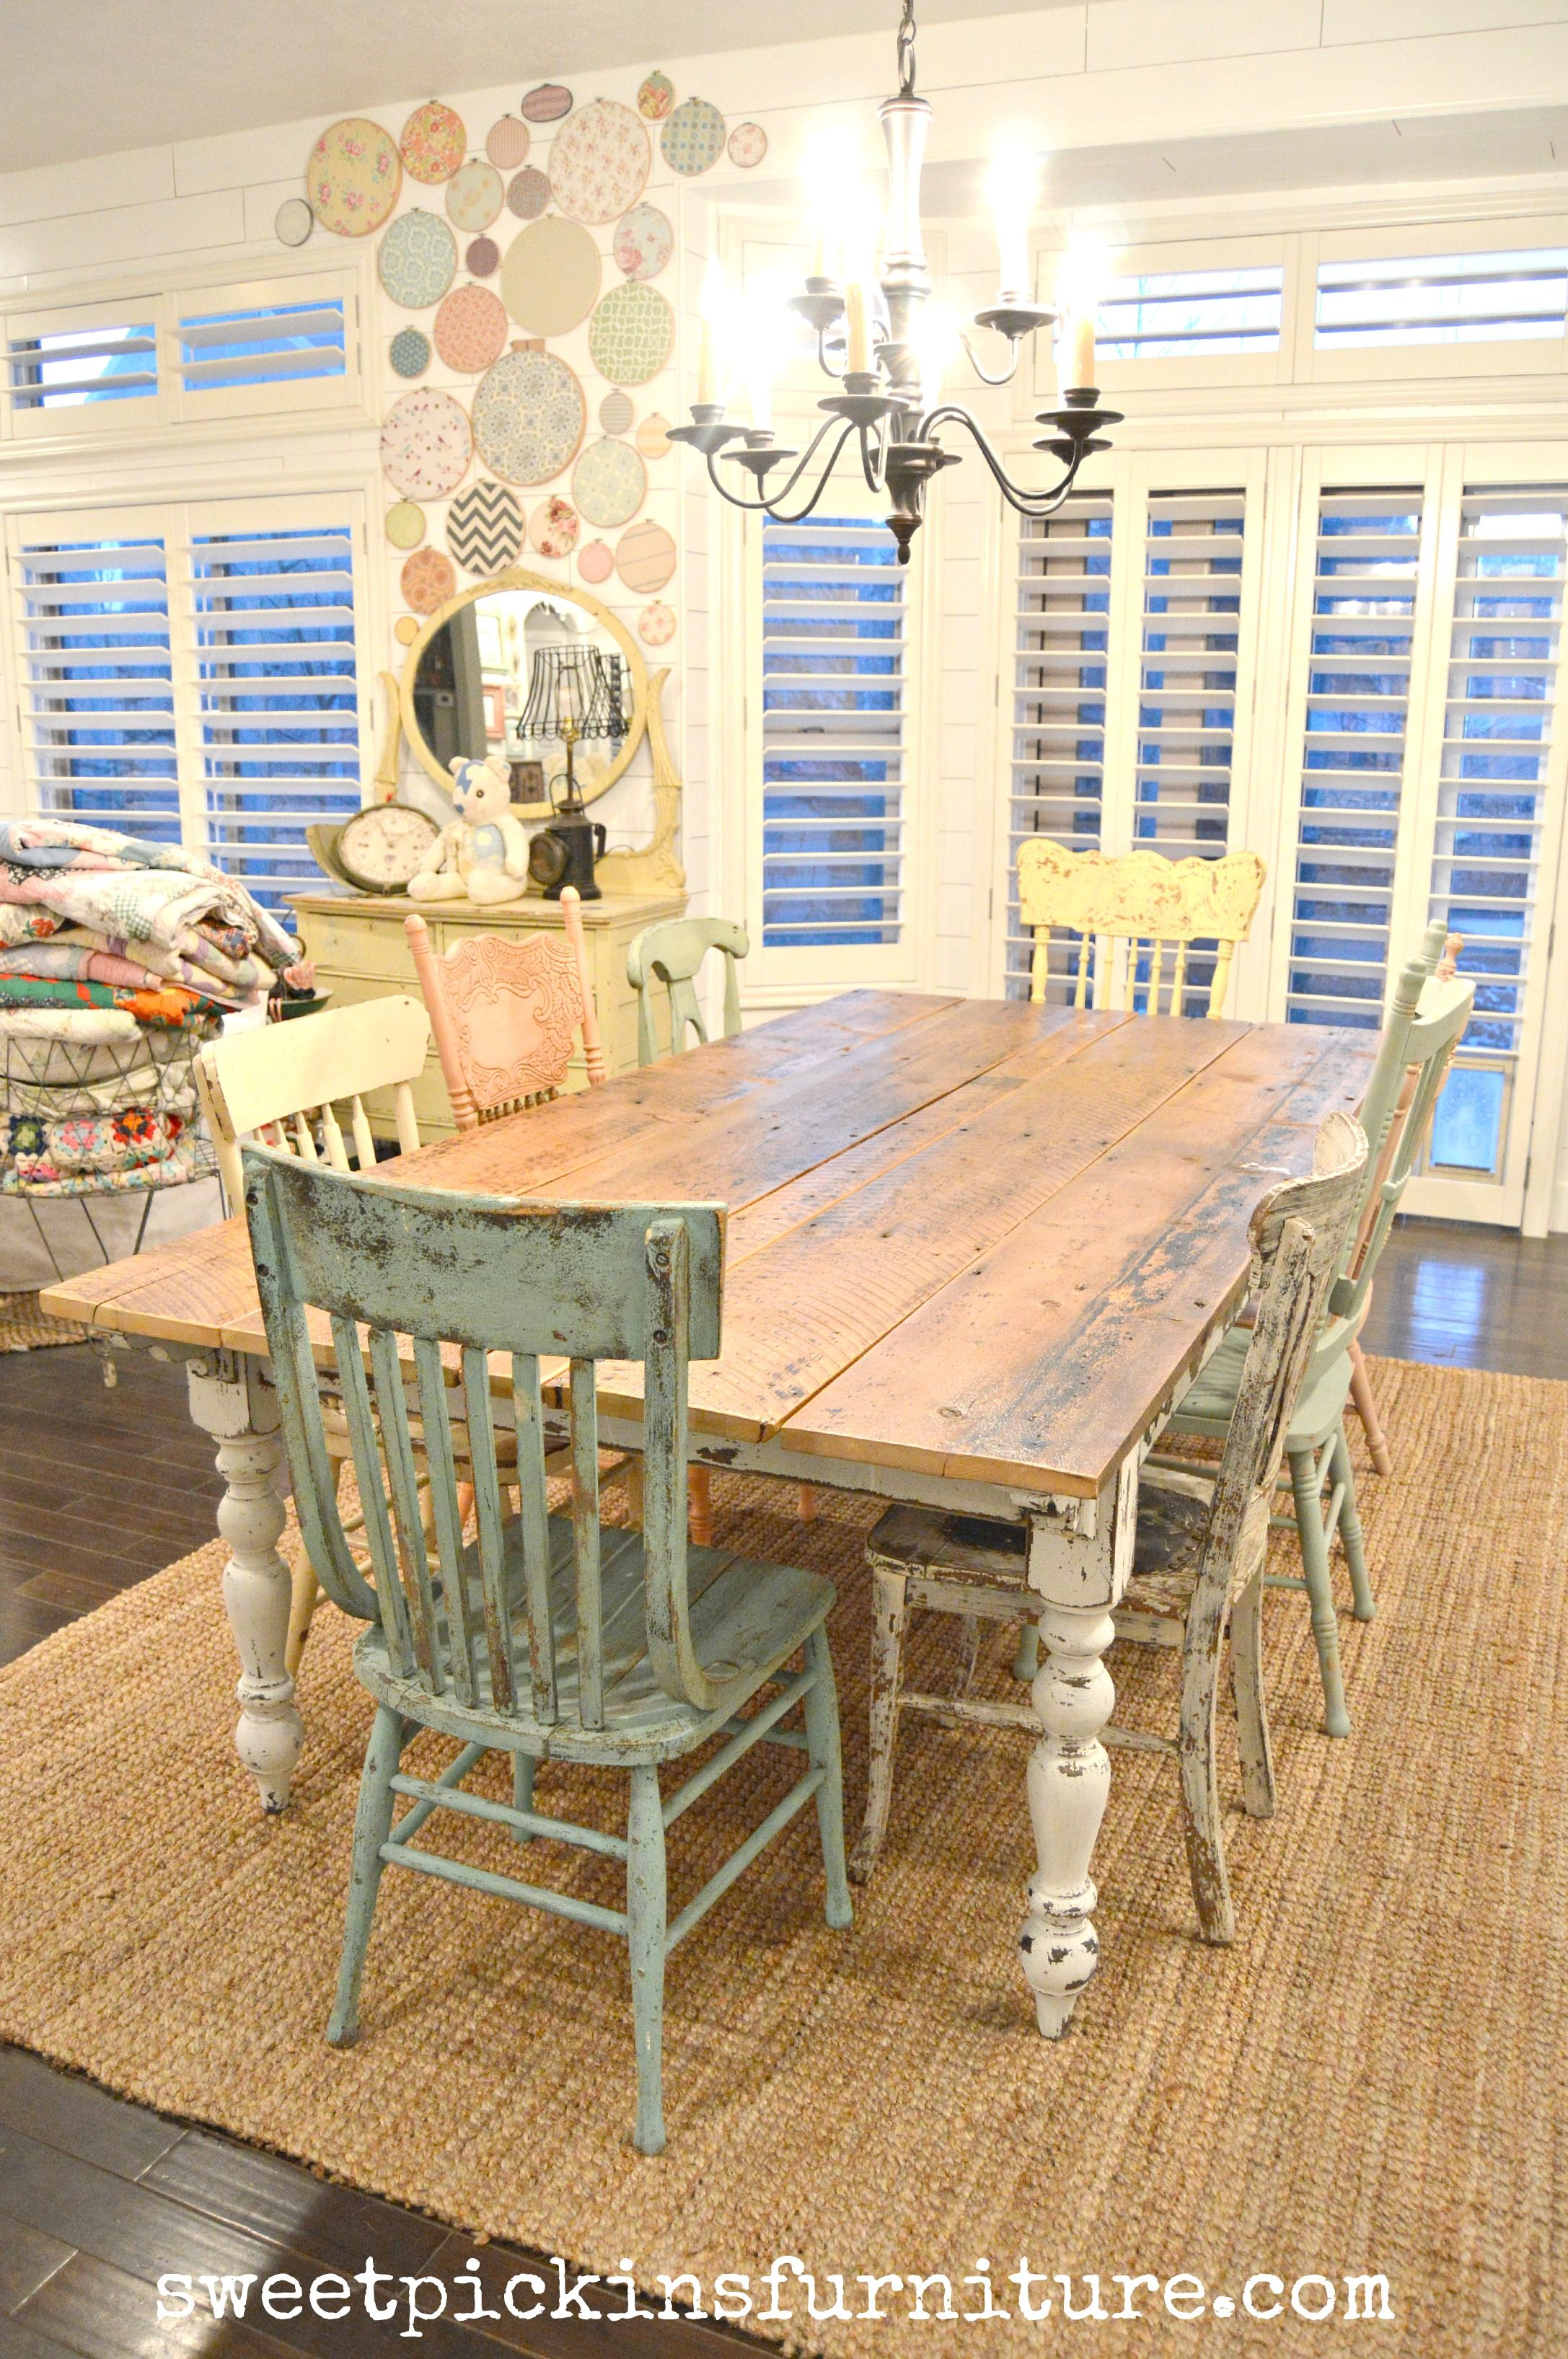 farm style kitchen table Zinc topped Table Mismatched Chairs in Rainbow Colors My new farm style